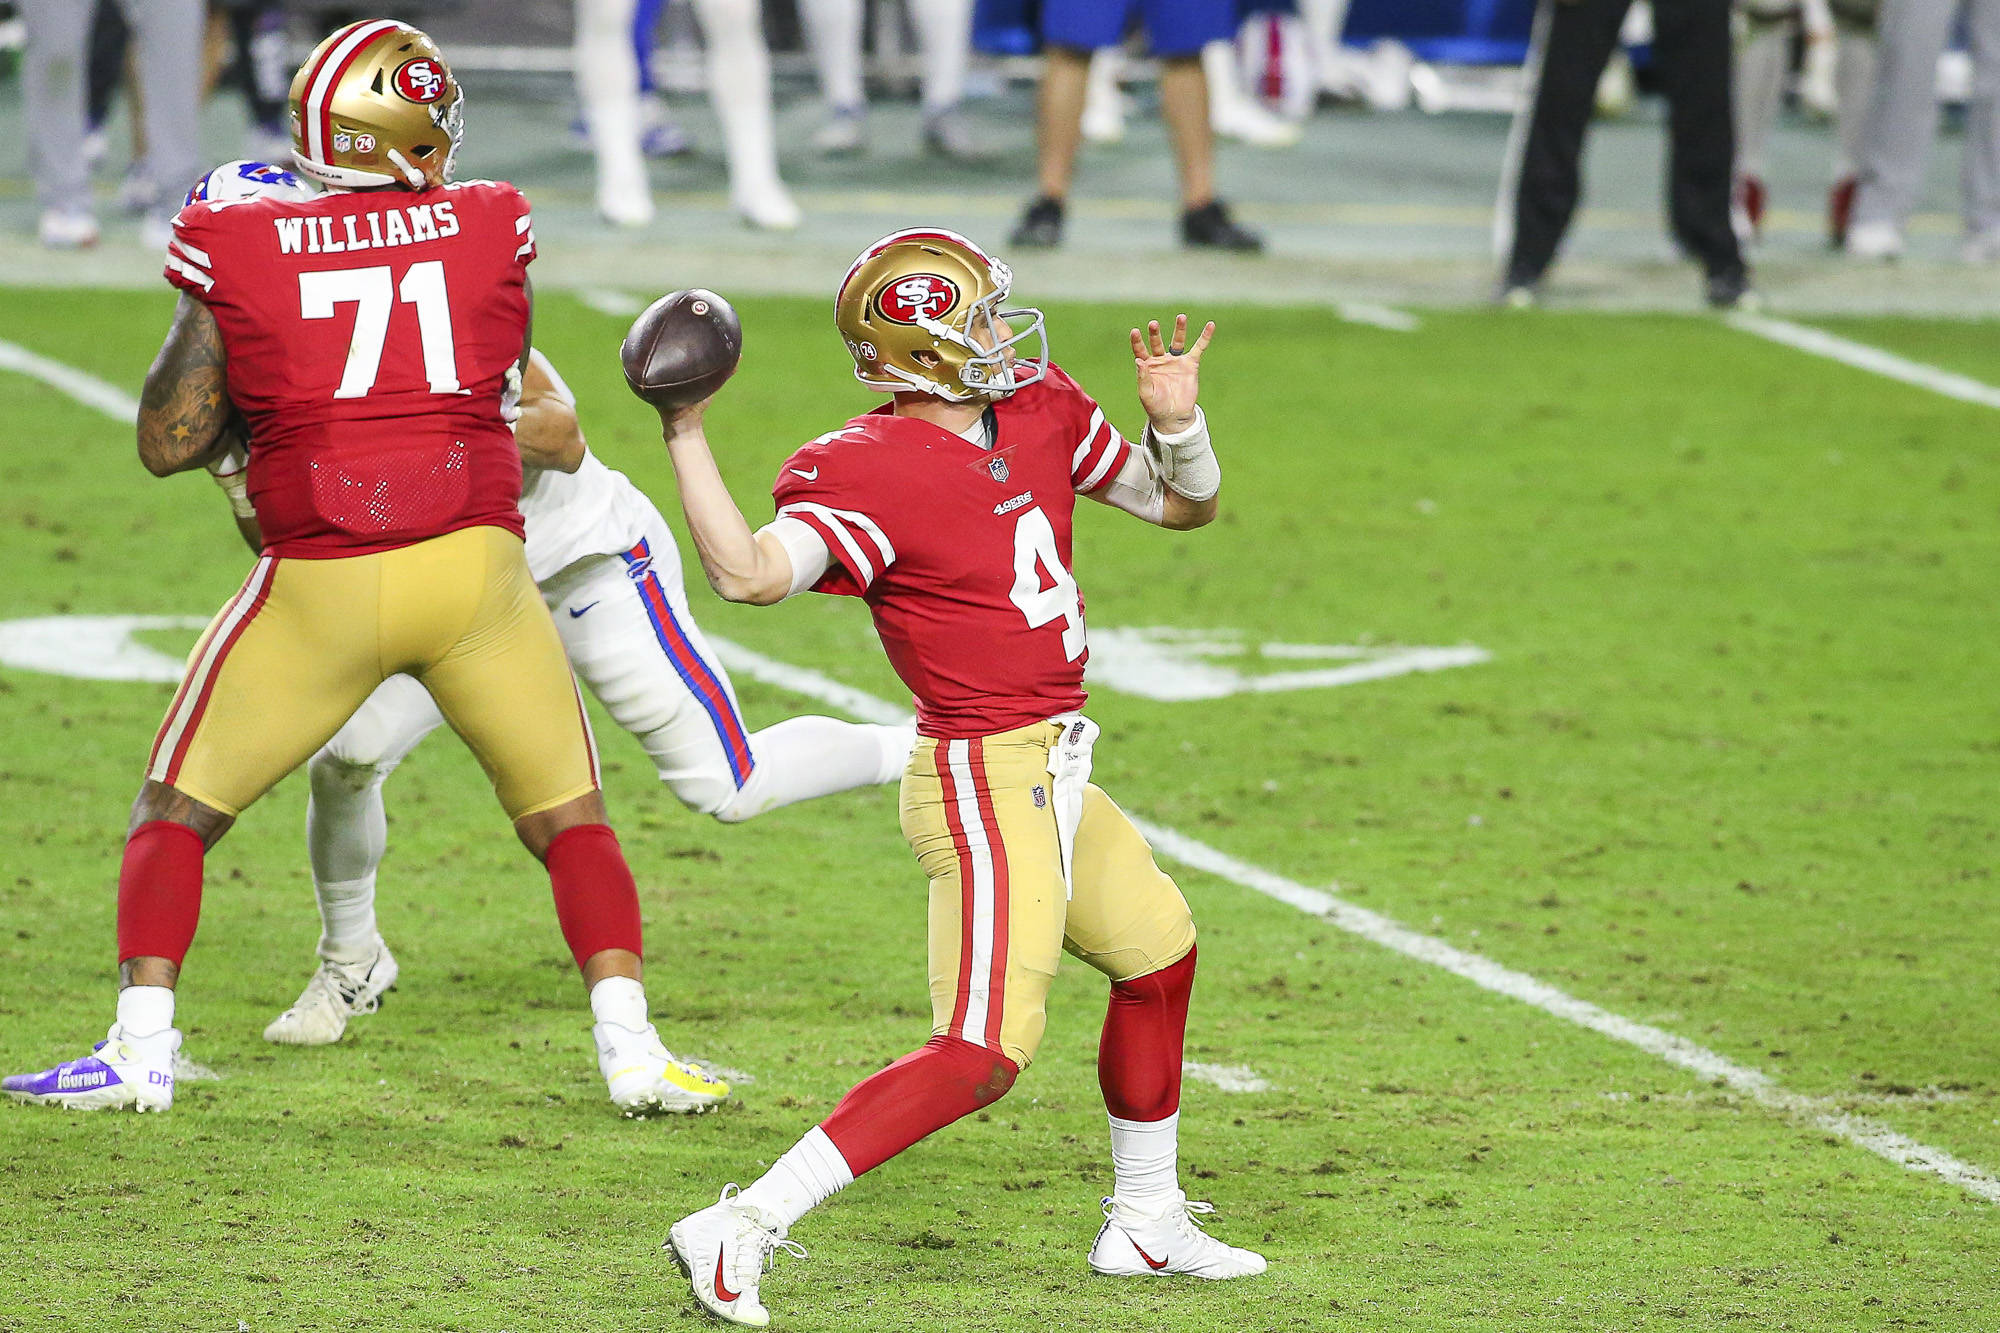 San Francisco 49ers quarterback Nick Mullens (4) during the 3rd quarter against the Buffalo Bills at State Farm Stadium on December 7, 2020 in Glendale, Arizona.(Chris Victorio | Special to the S.F. Examiner).